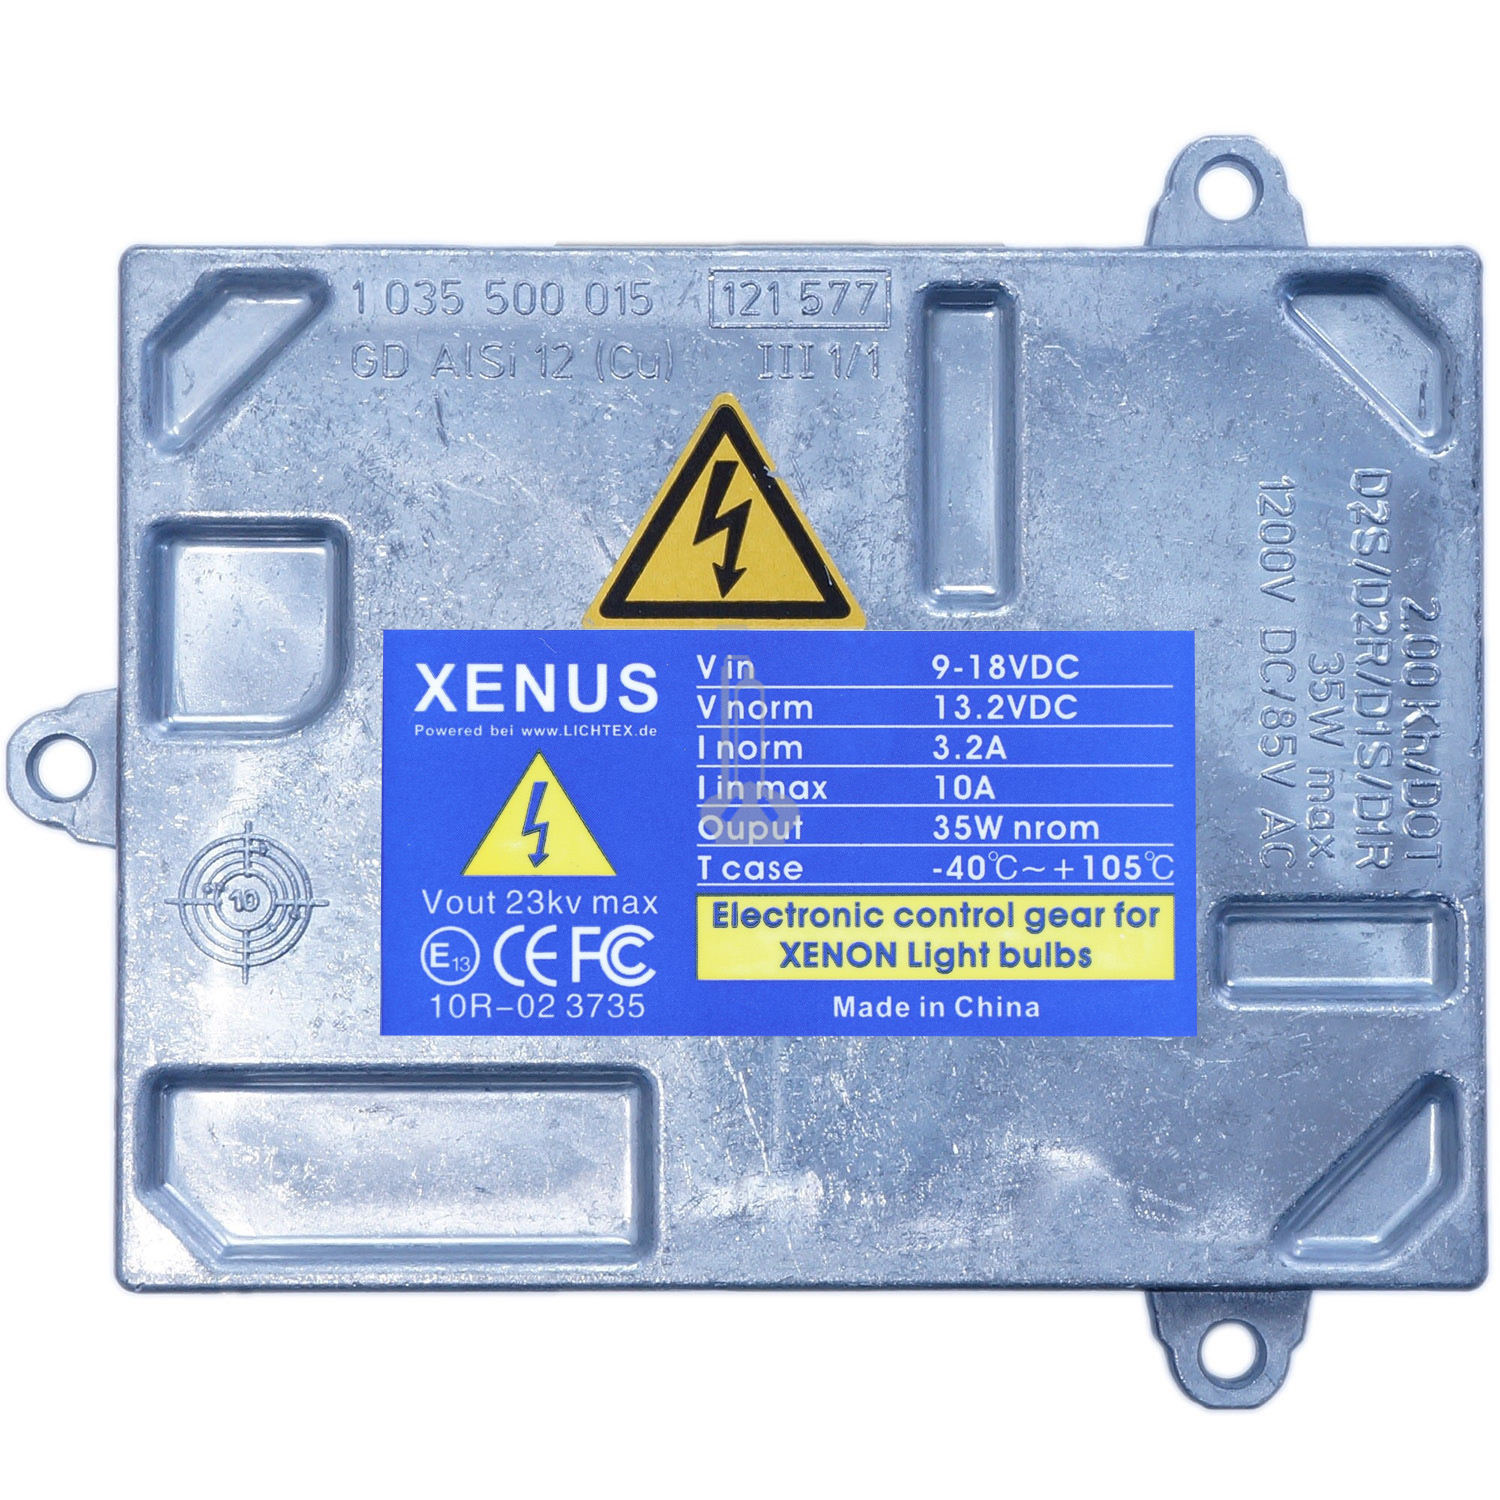 XENUS D1S 1 307 329 115 Xenon Headlight Ballast, Replacement for AL